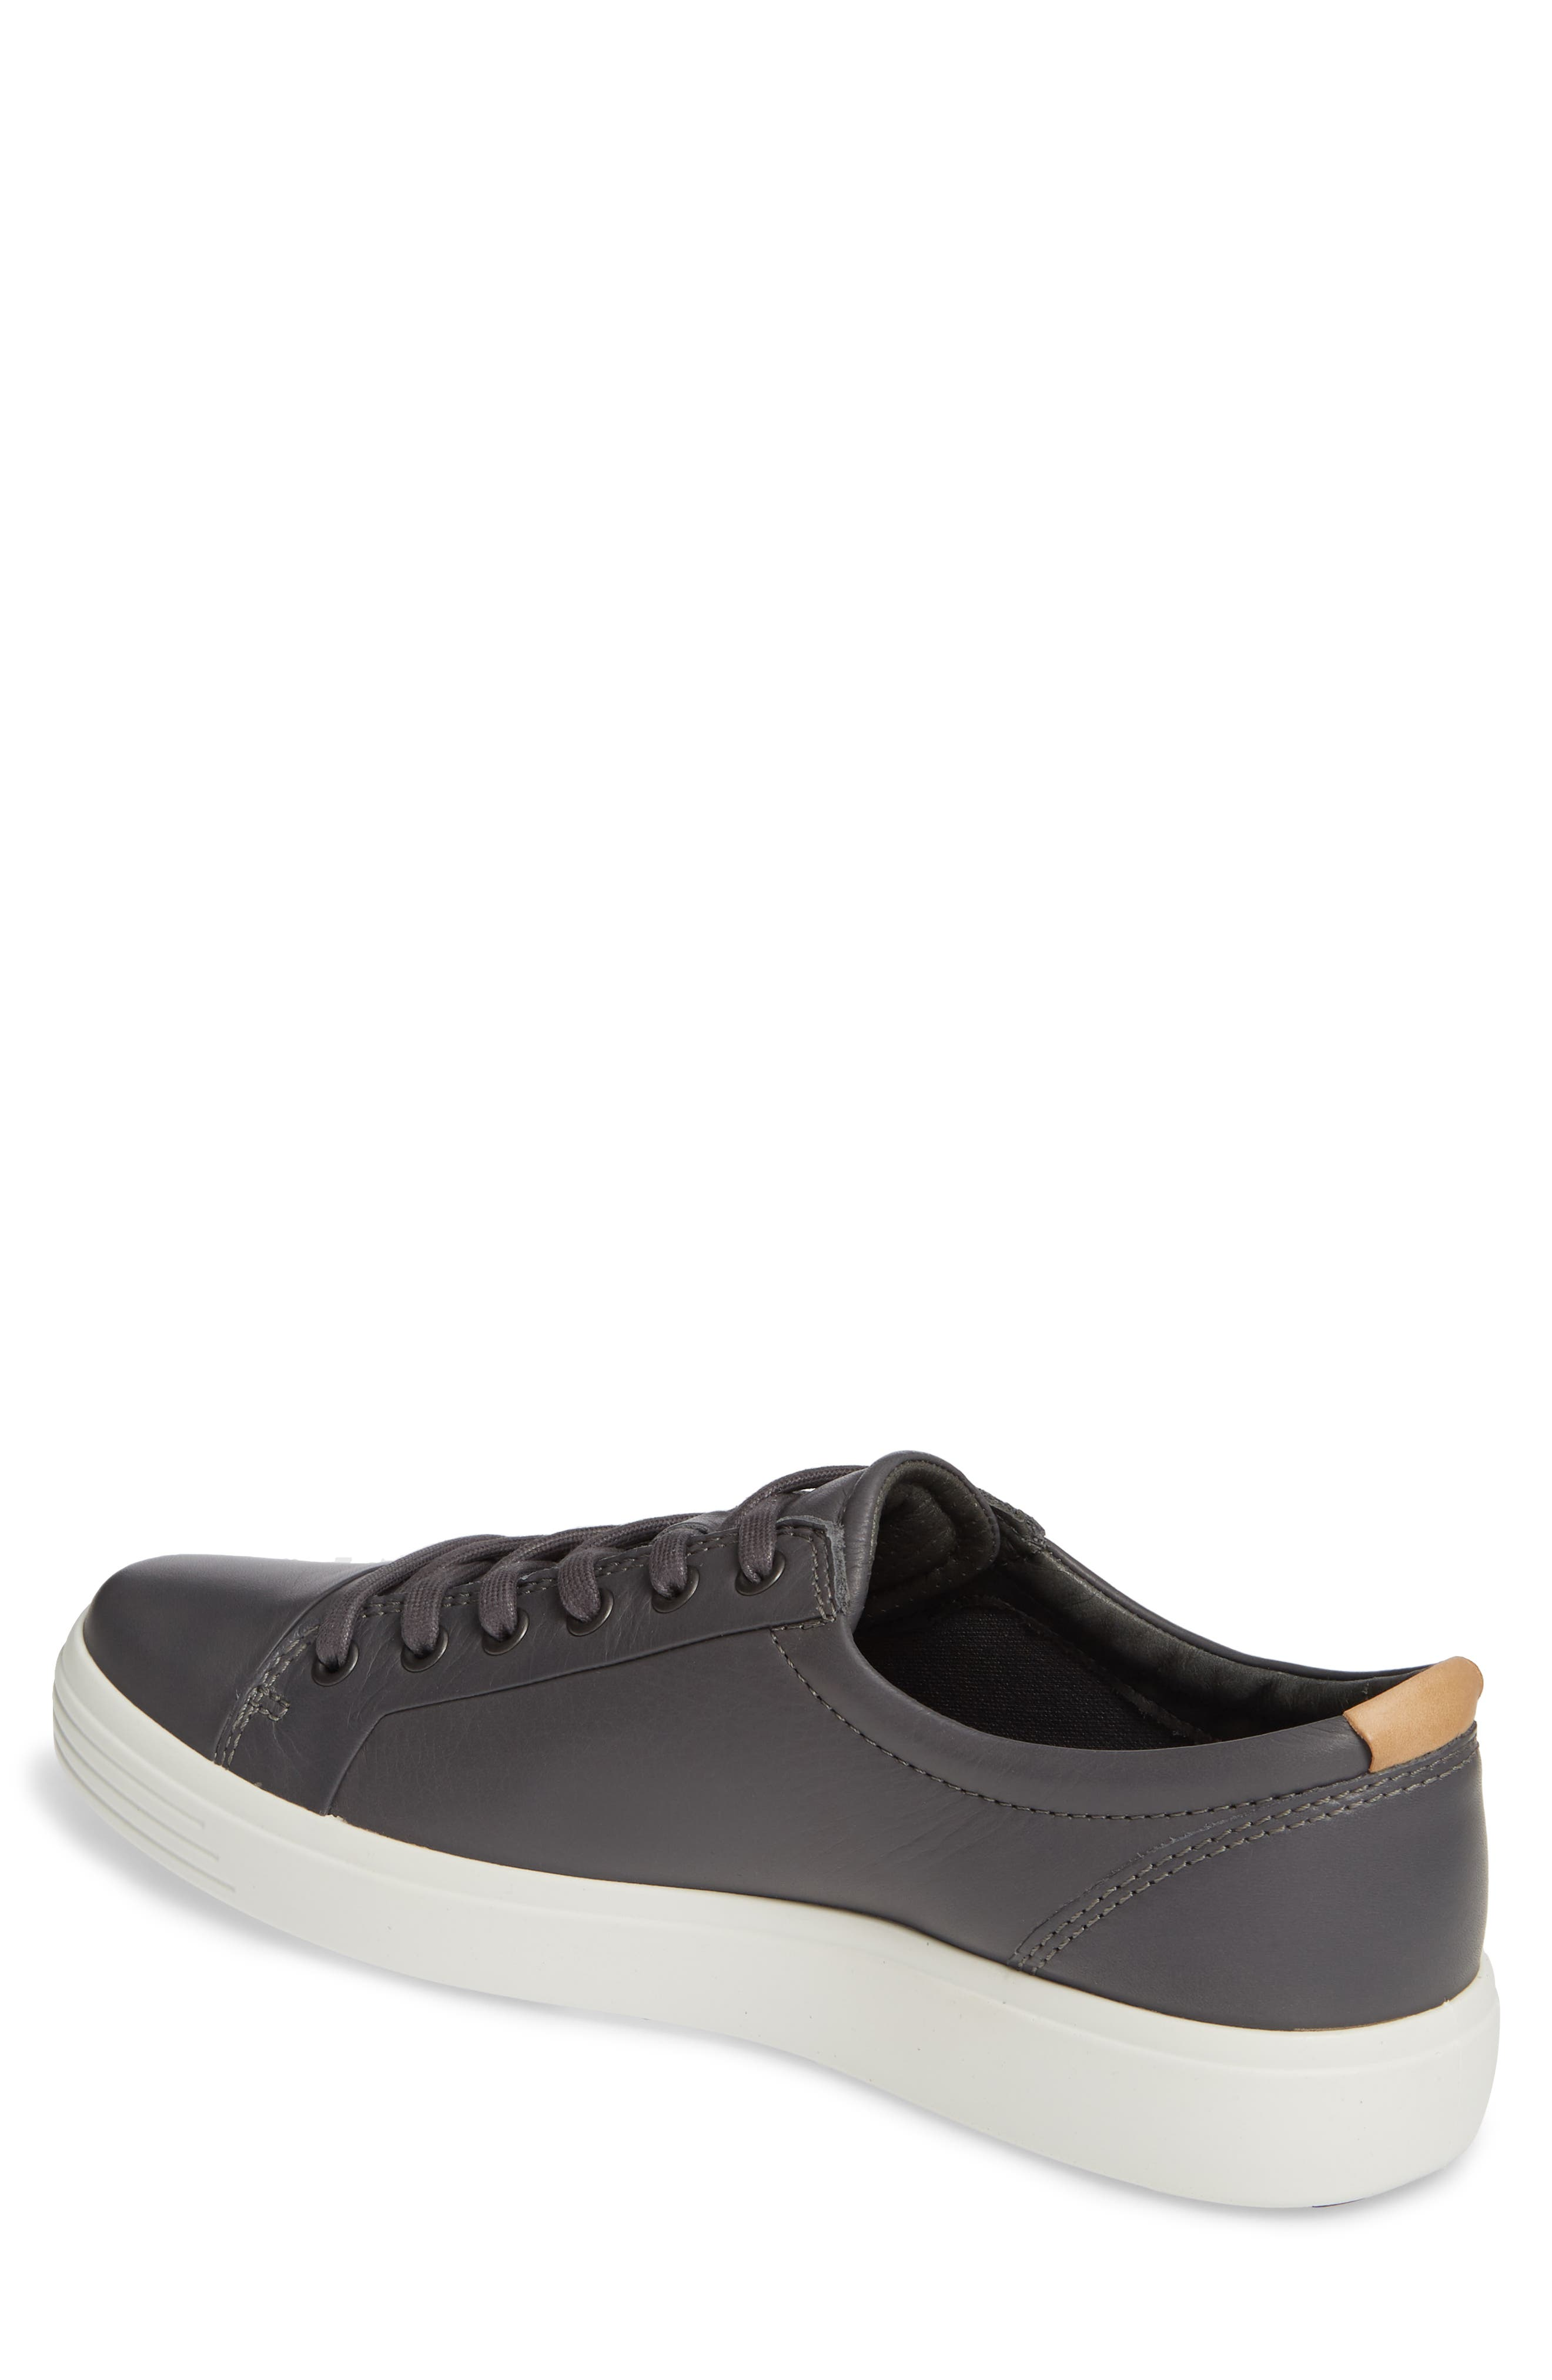 ECCO, Soft VII Lace-Up Sneaker, Alternate thumbnail 2, color, GREY DRAGO